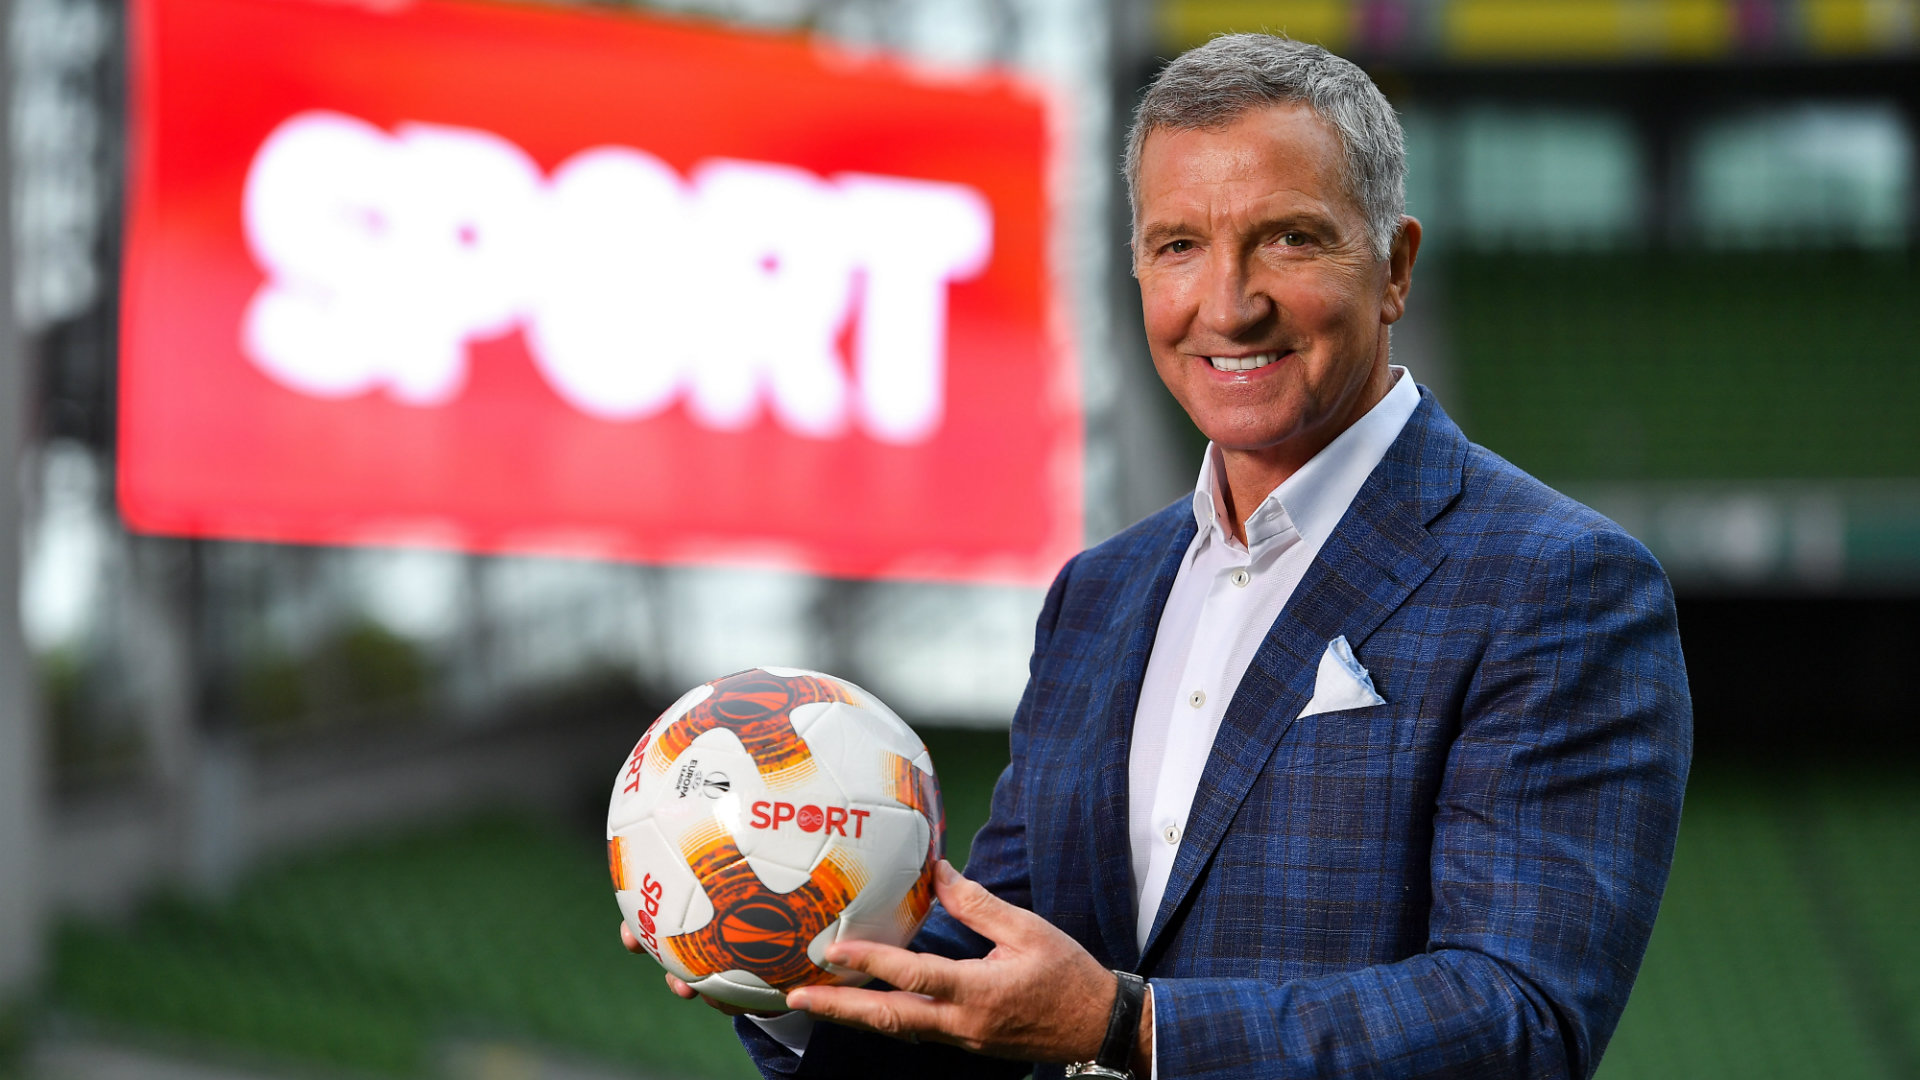 Graeme Souness Virgin Media Sport promo